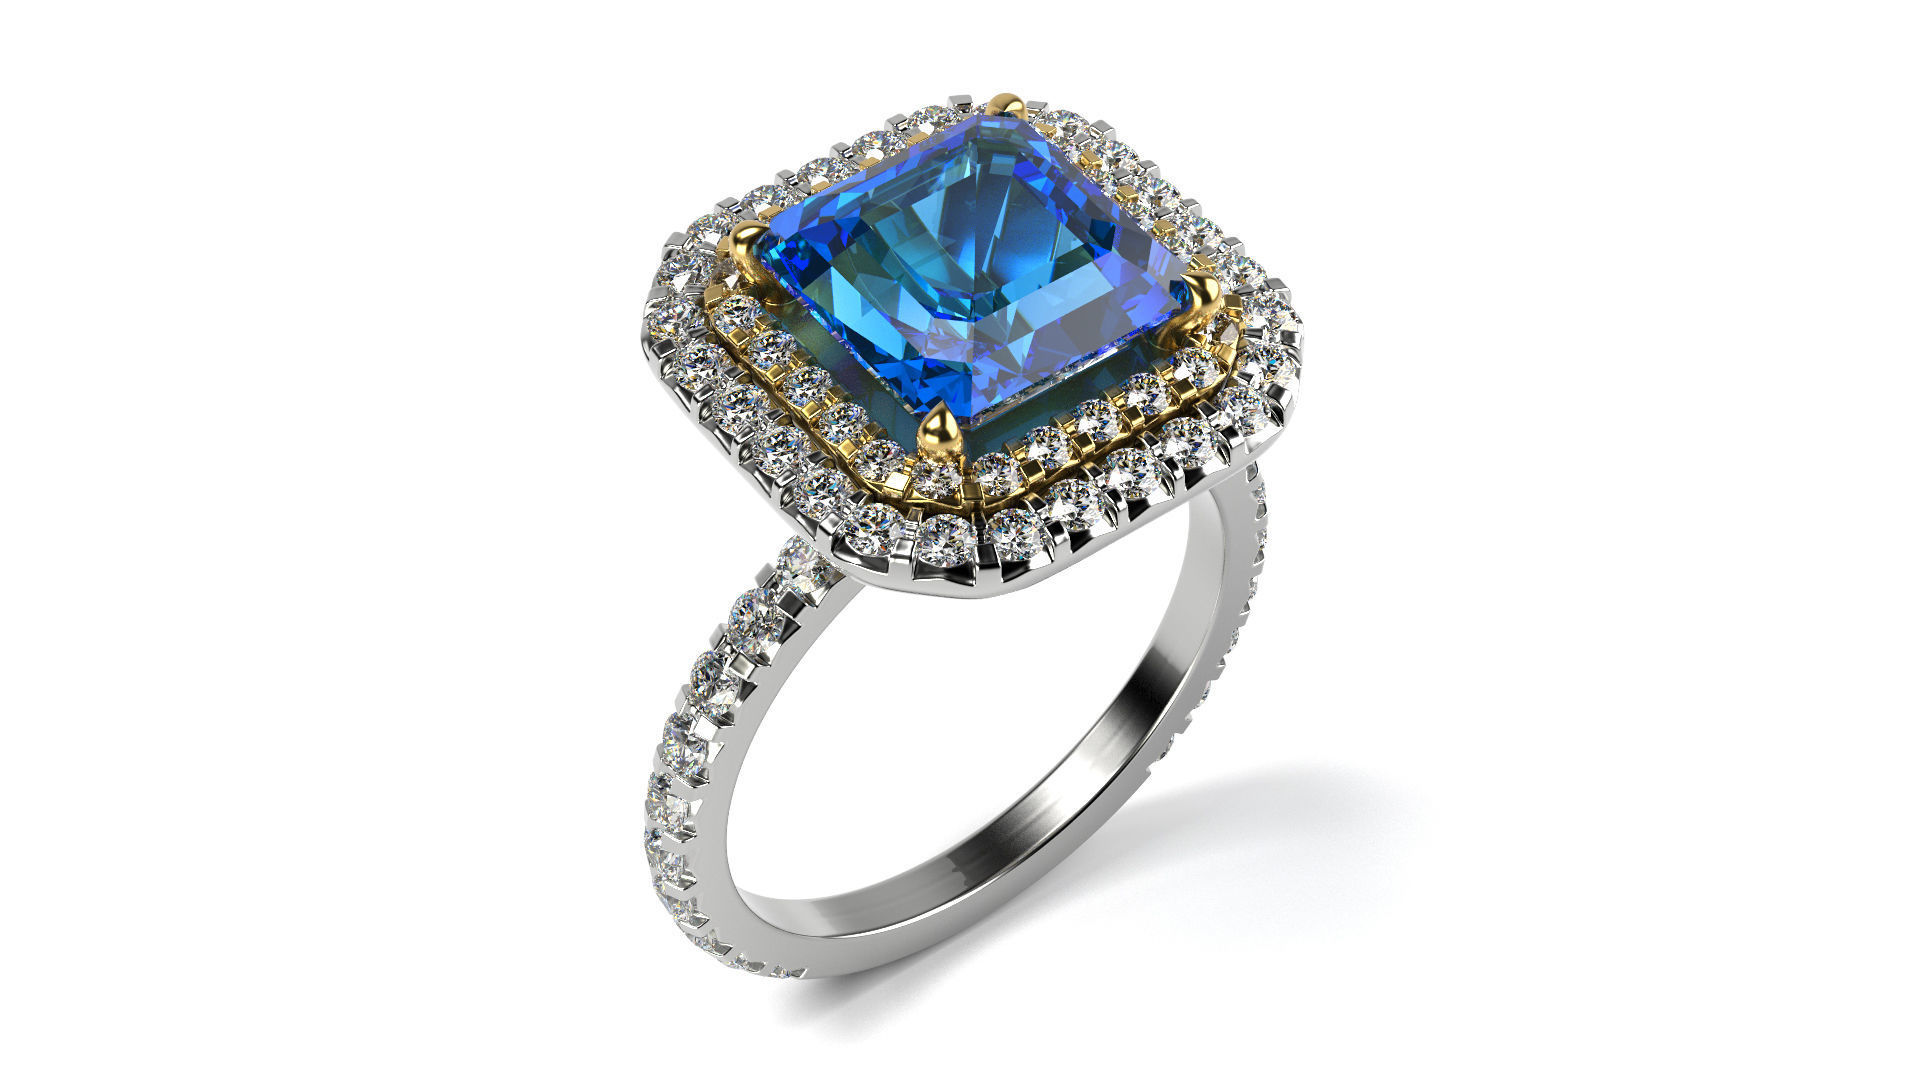 salom shop en gold in diamonds large ring with sapphire model sapphires ceylon paved yellow and